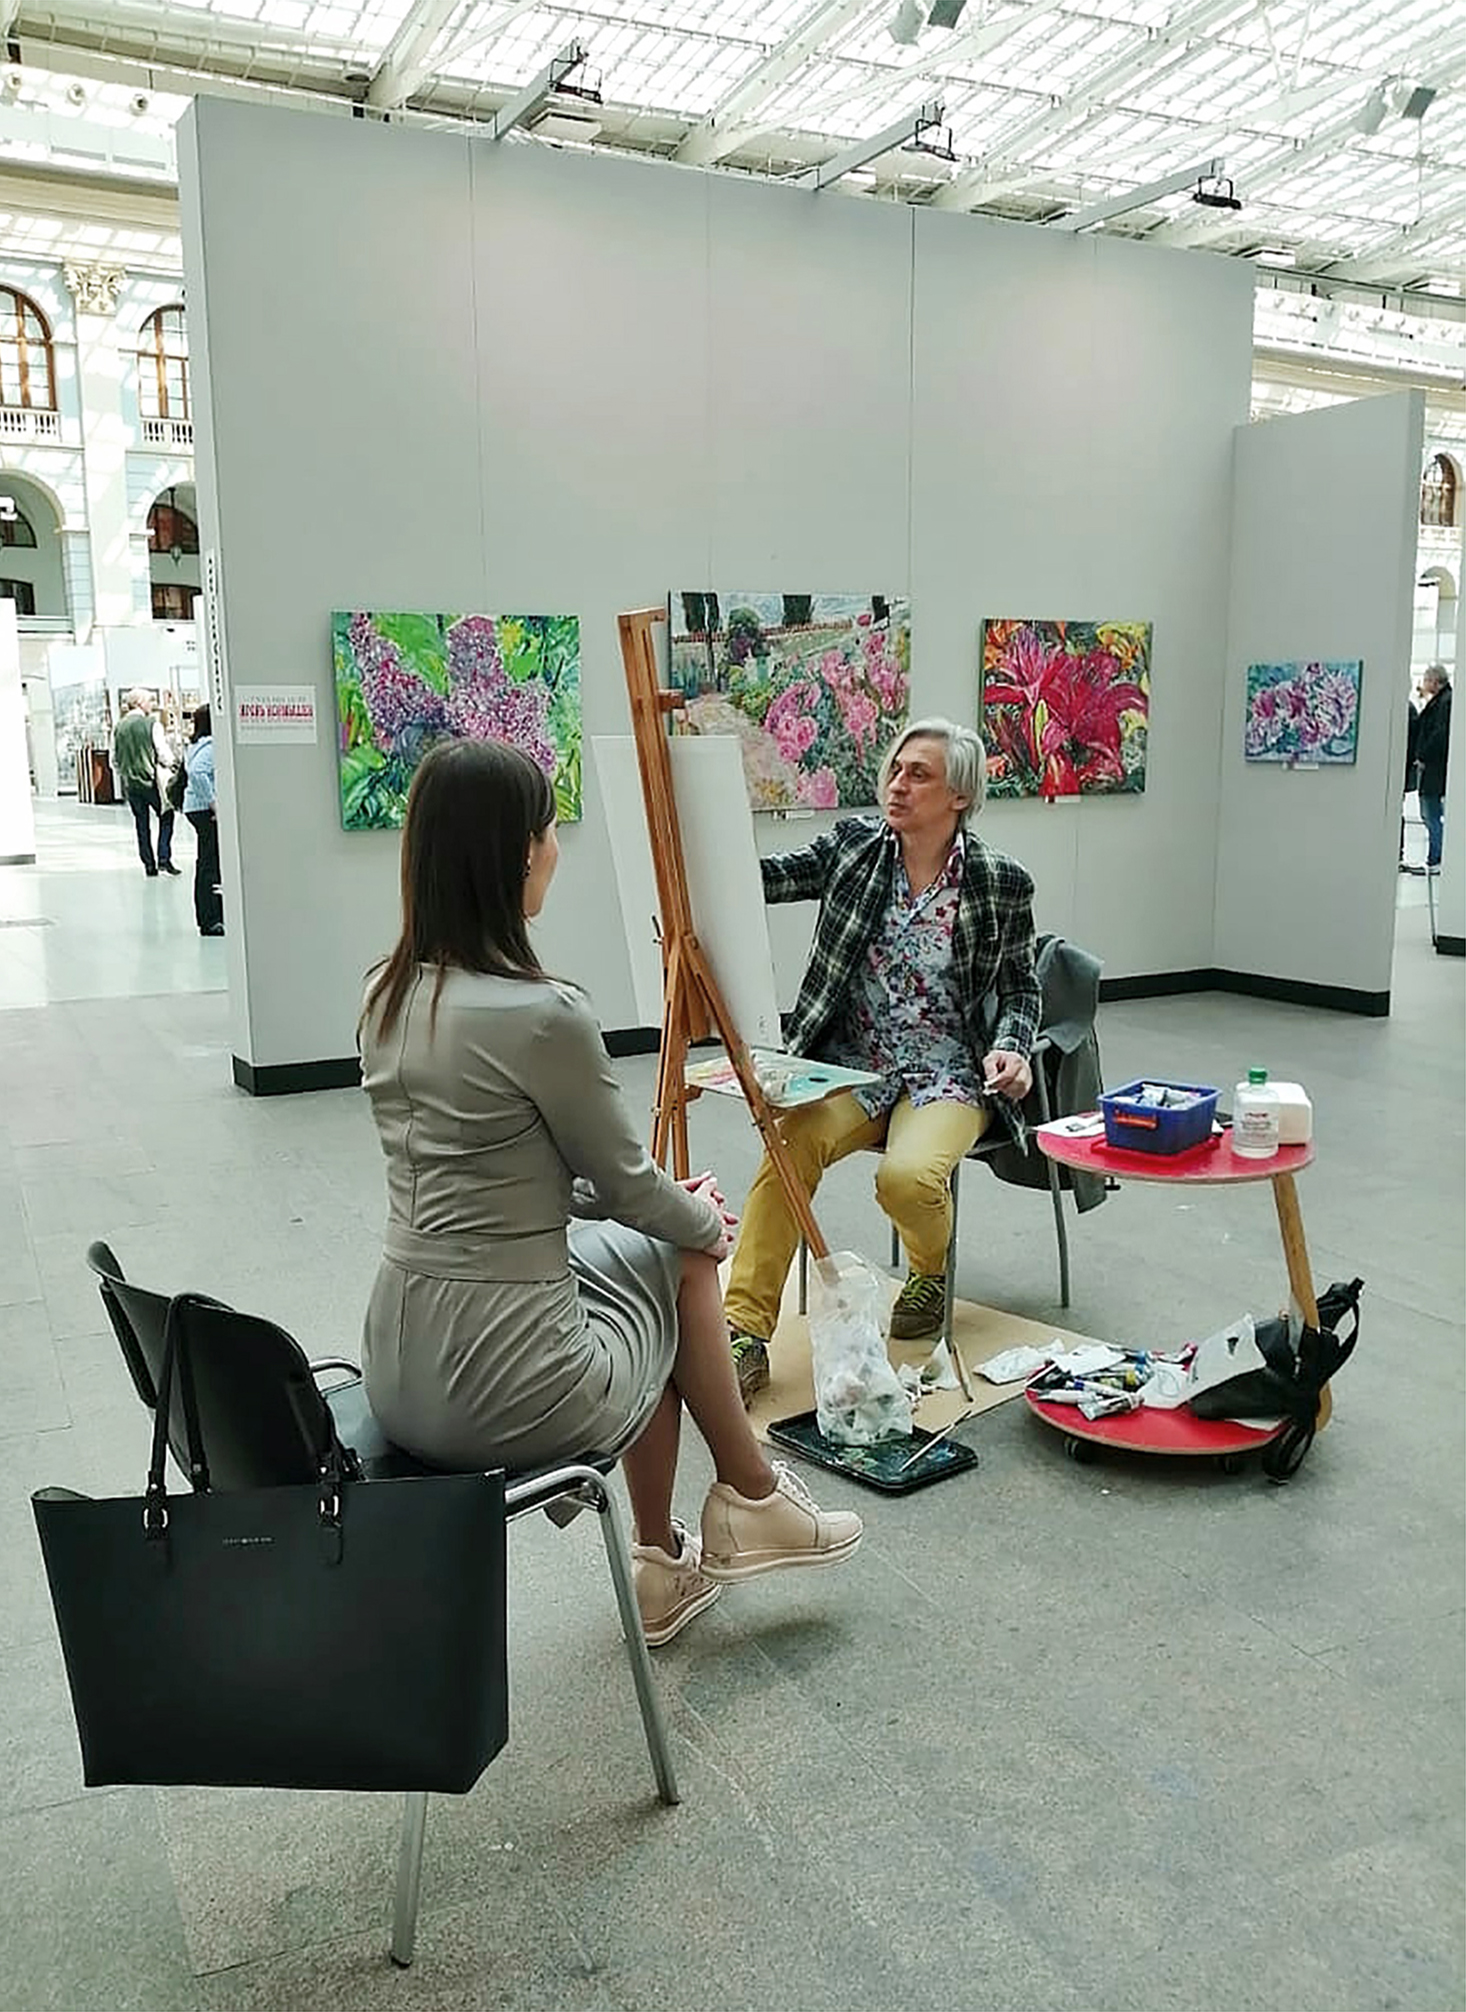 A portrait in process. At the Art April Fair. Gostiny Dvor, April 2019